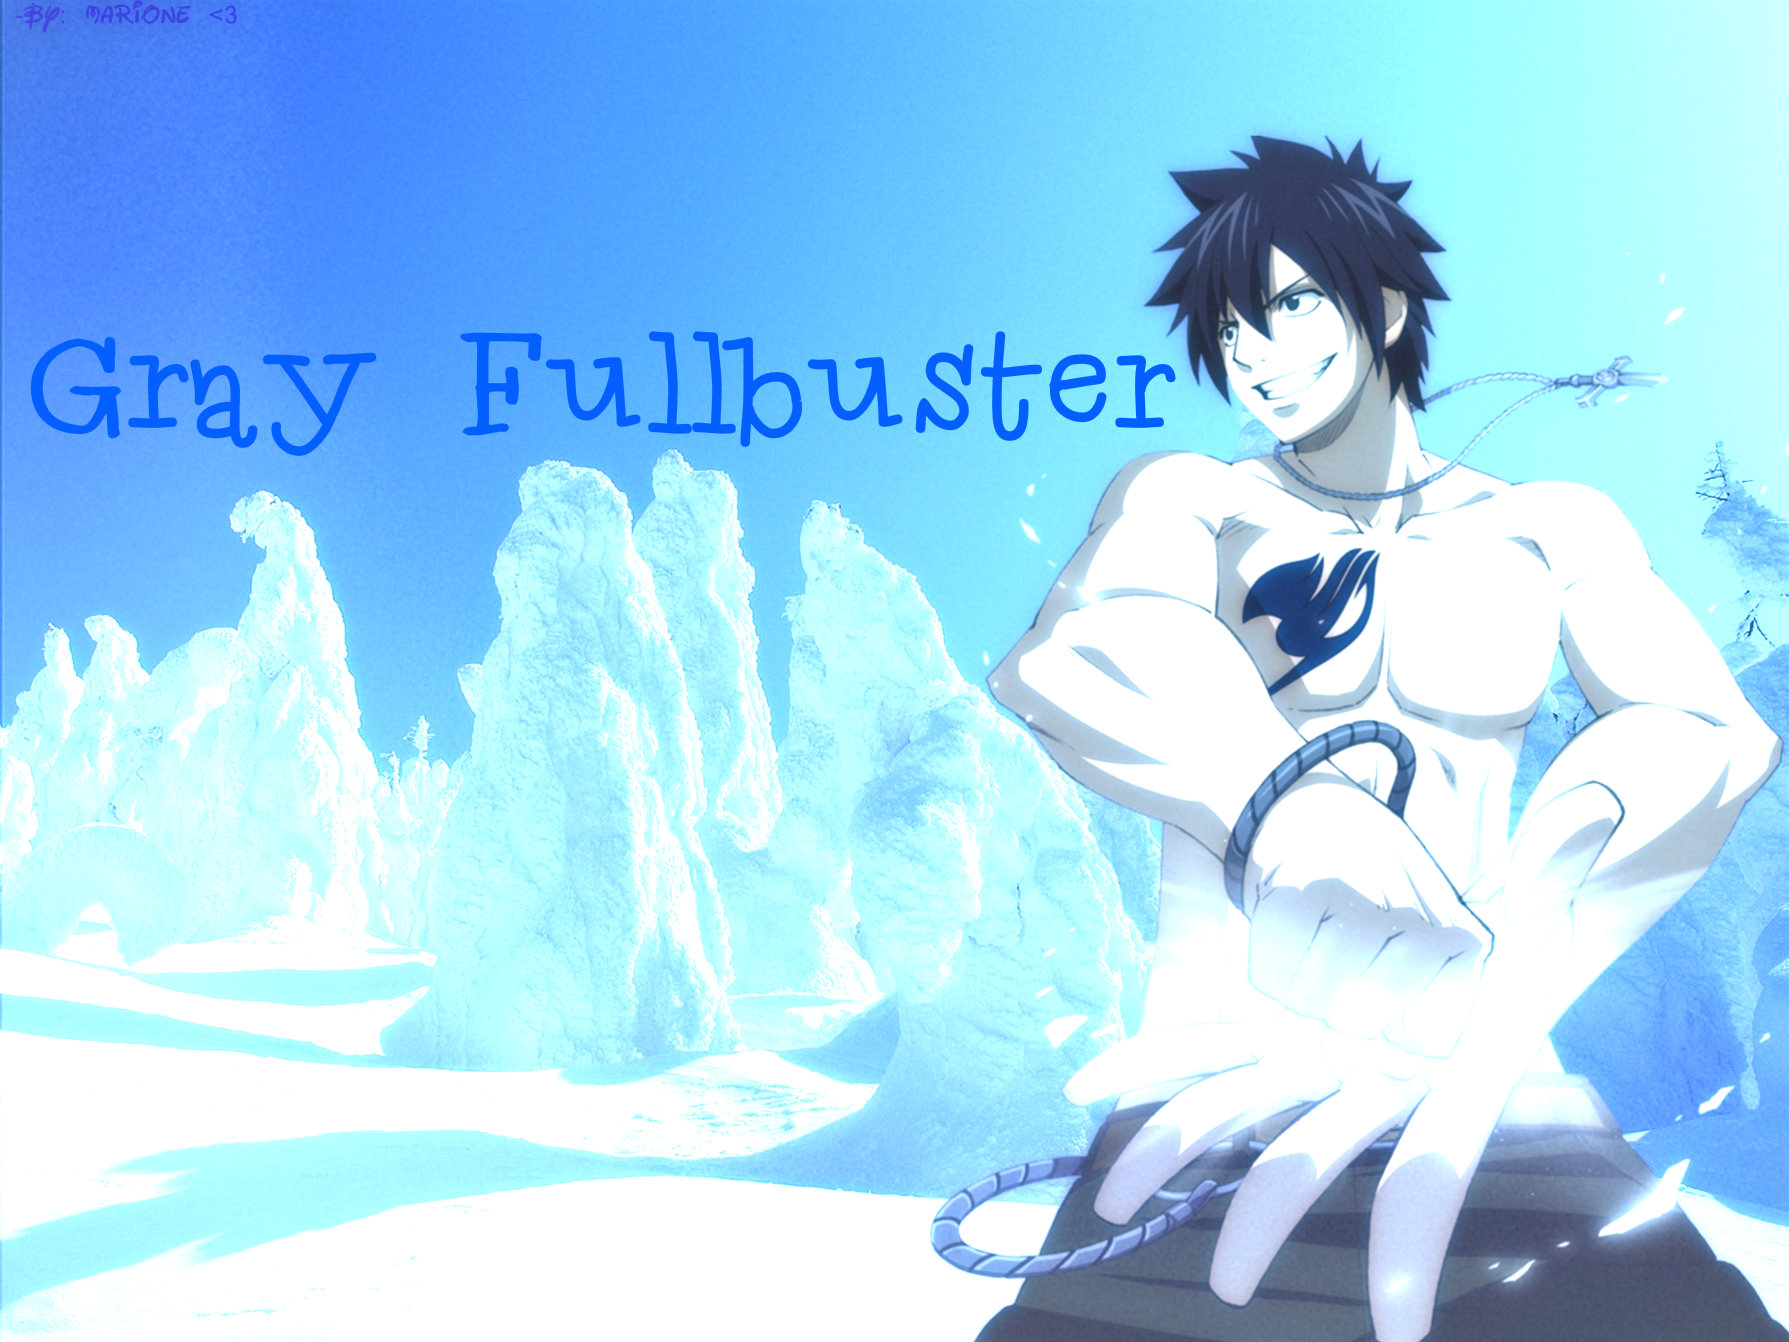 Gray Fullbuster FT Wallpaper (with a banner)